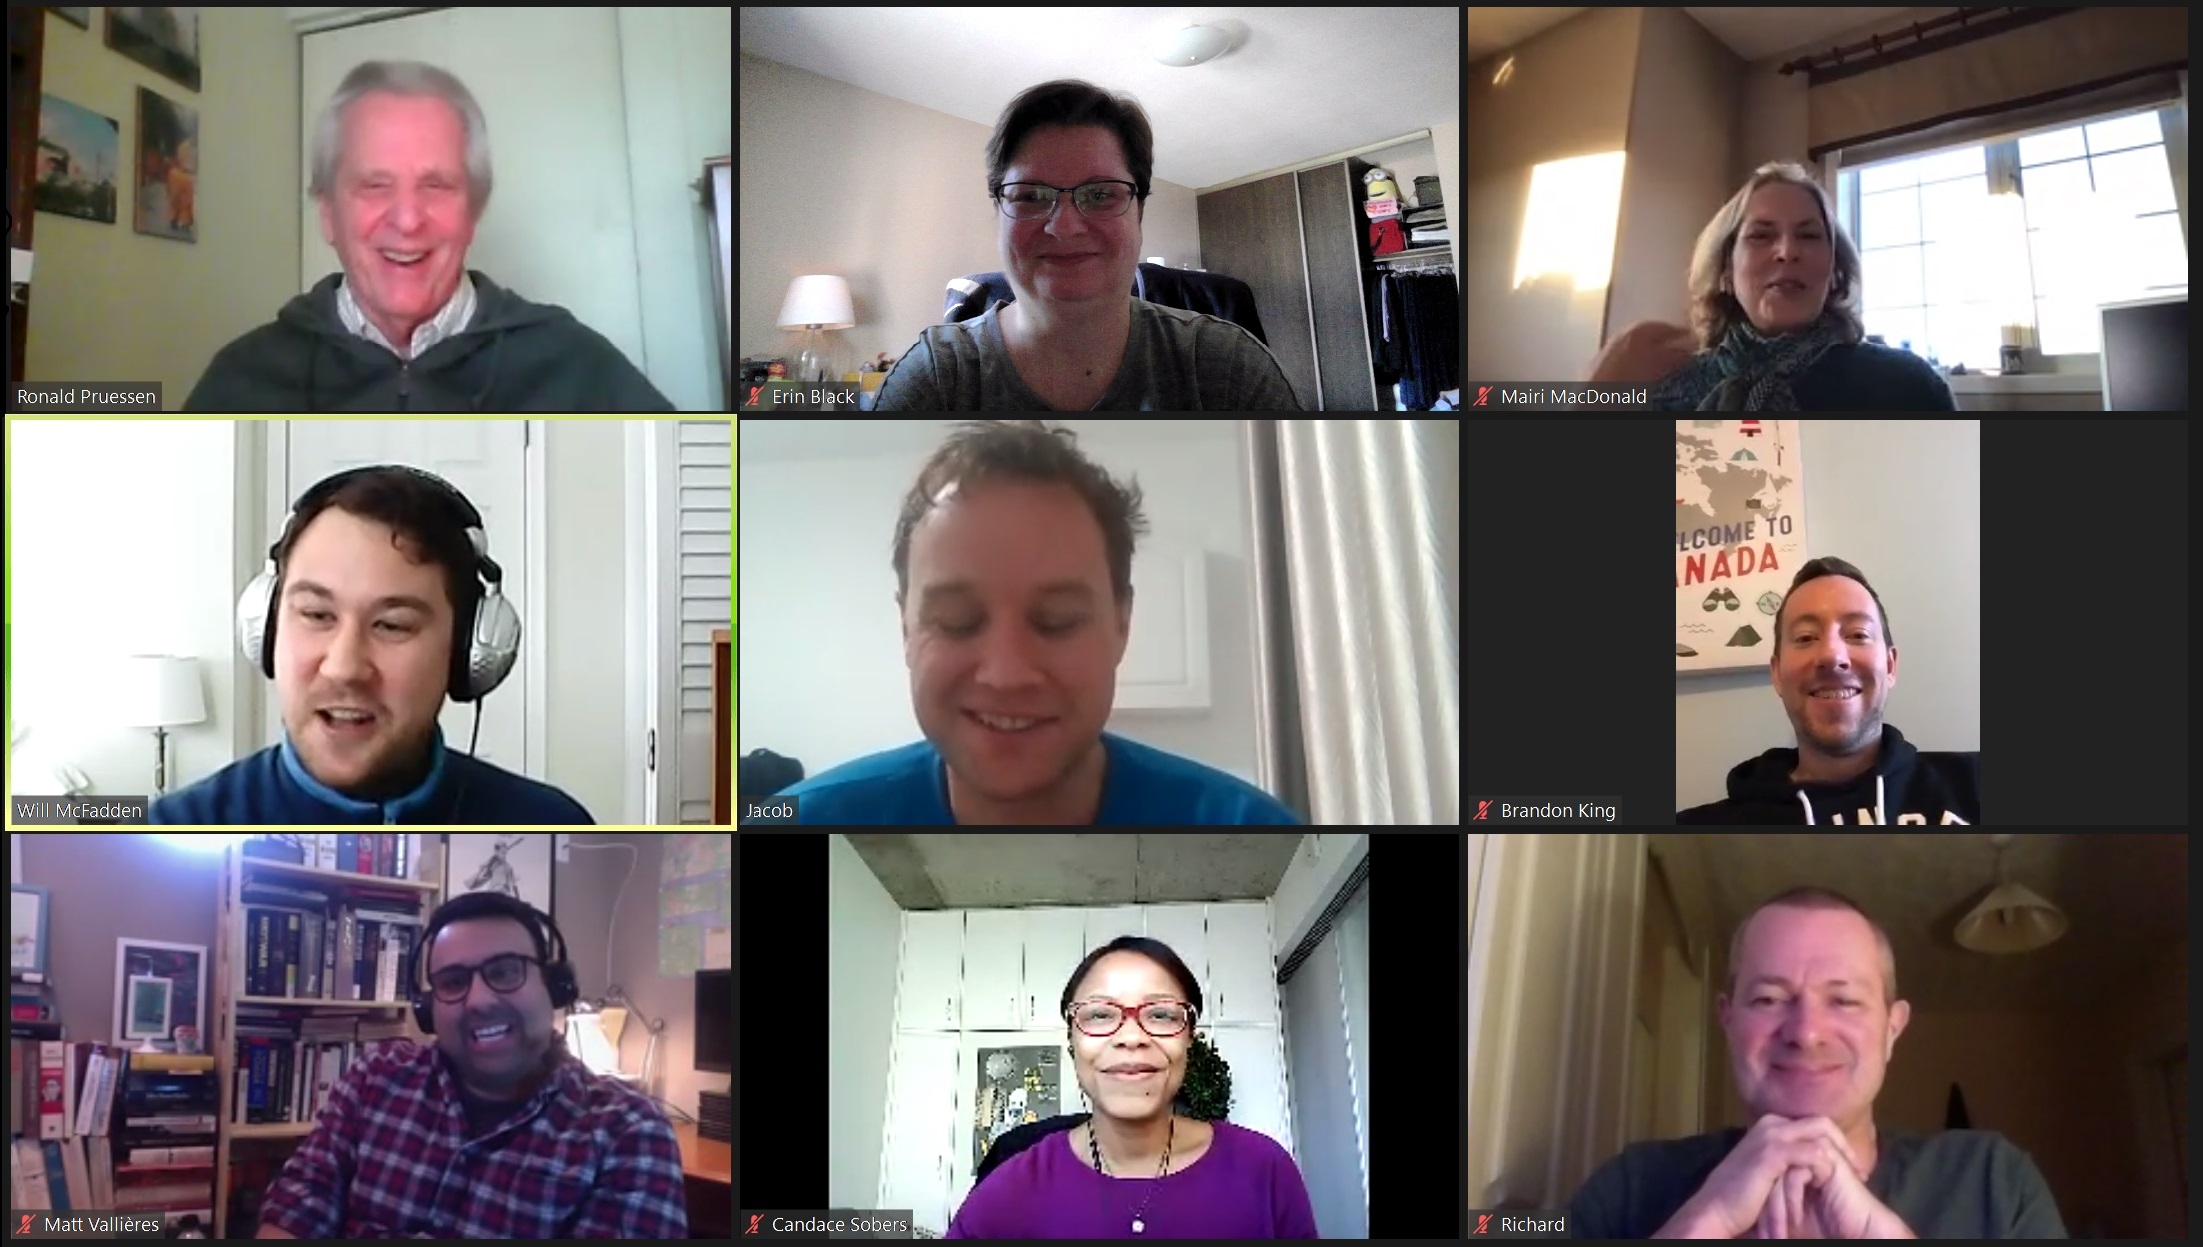 screengrab of online Zoom chat with Ronald W. Pruessen and 8 other people